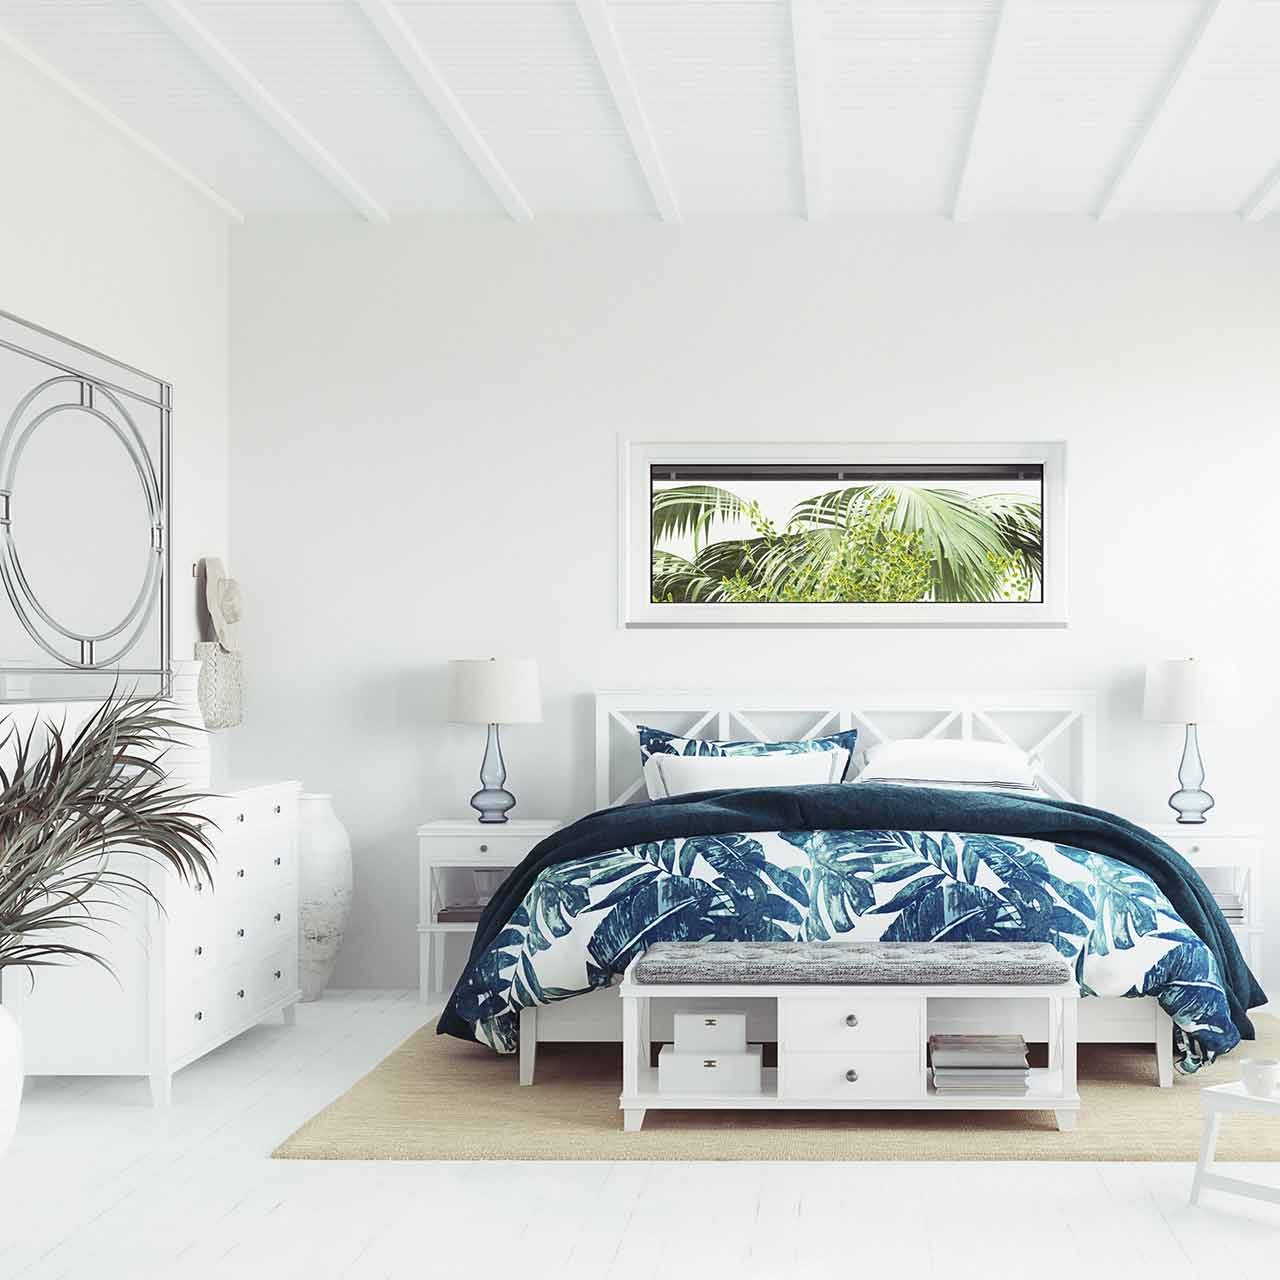 Coastal style bedroom interior design is casual, peace inspiring and timeworn furnishings